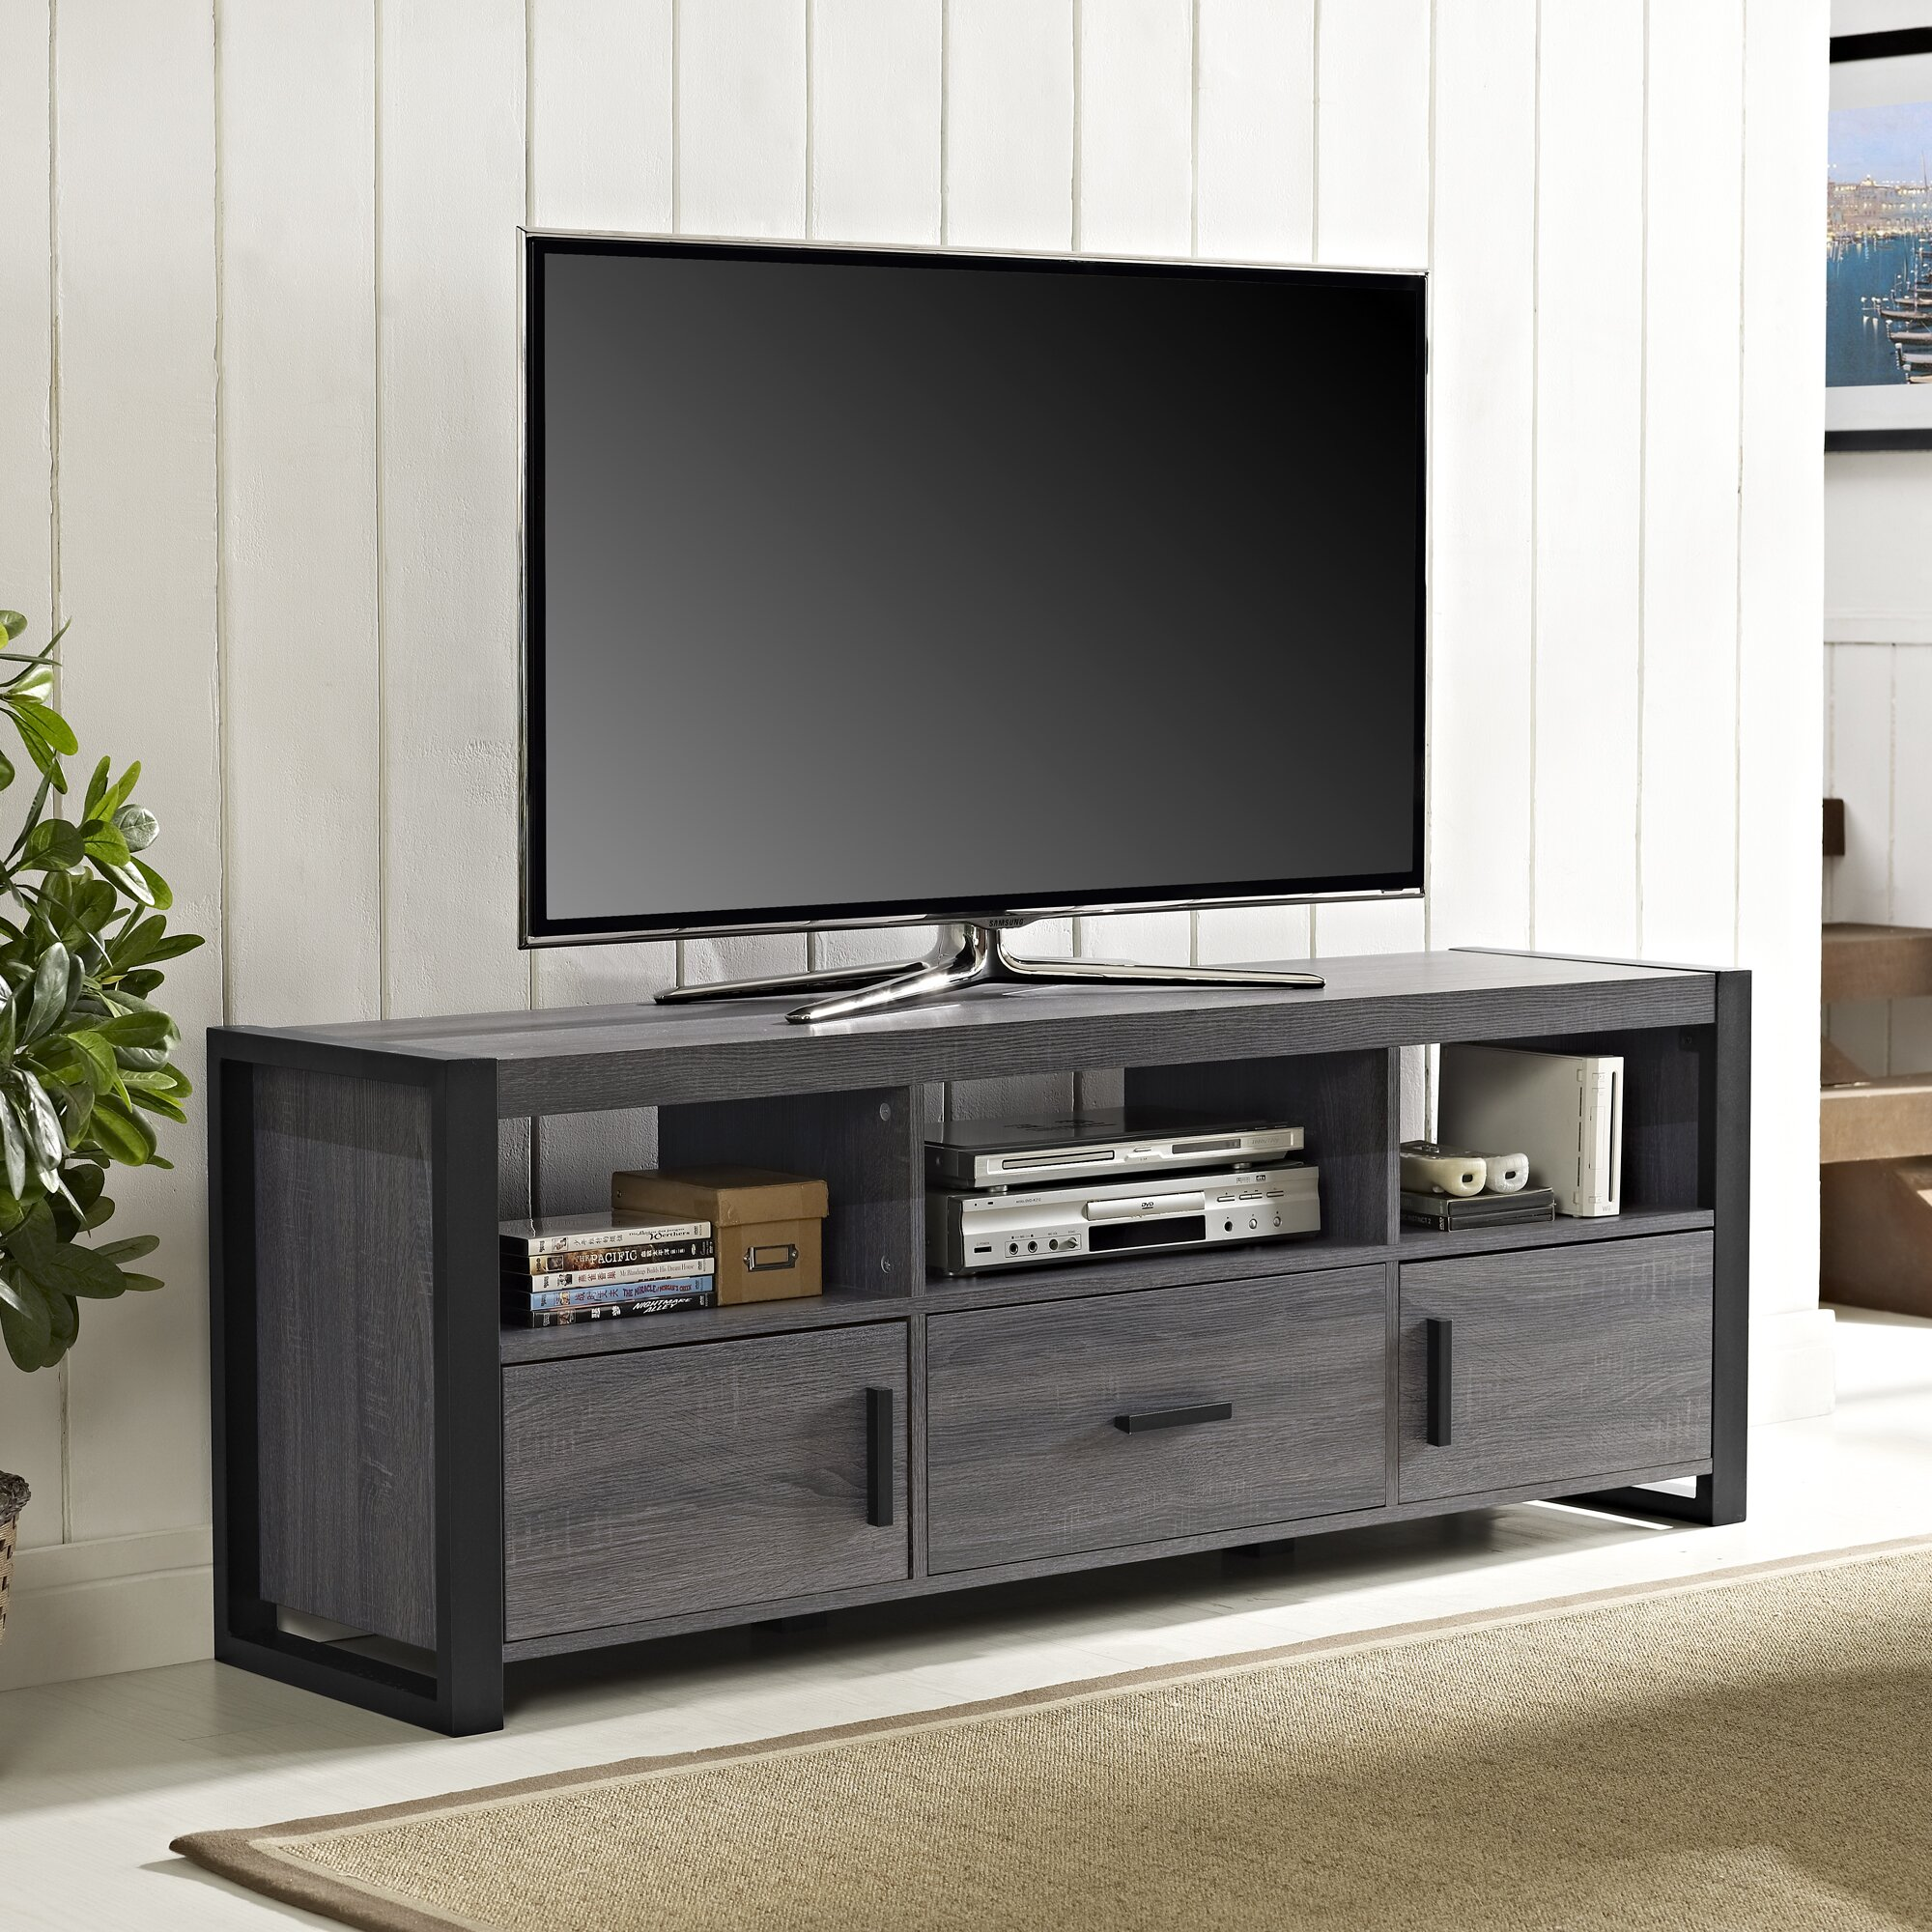 Angelo home tv stand reviews wayfair Home furniture tv stands